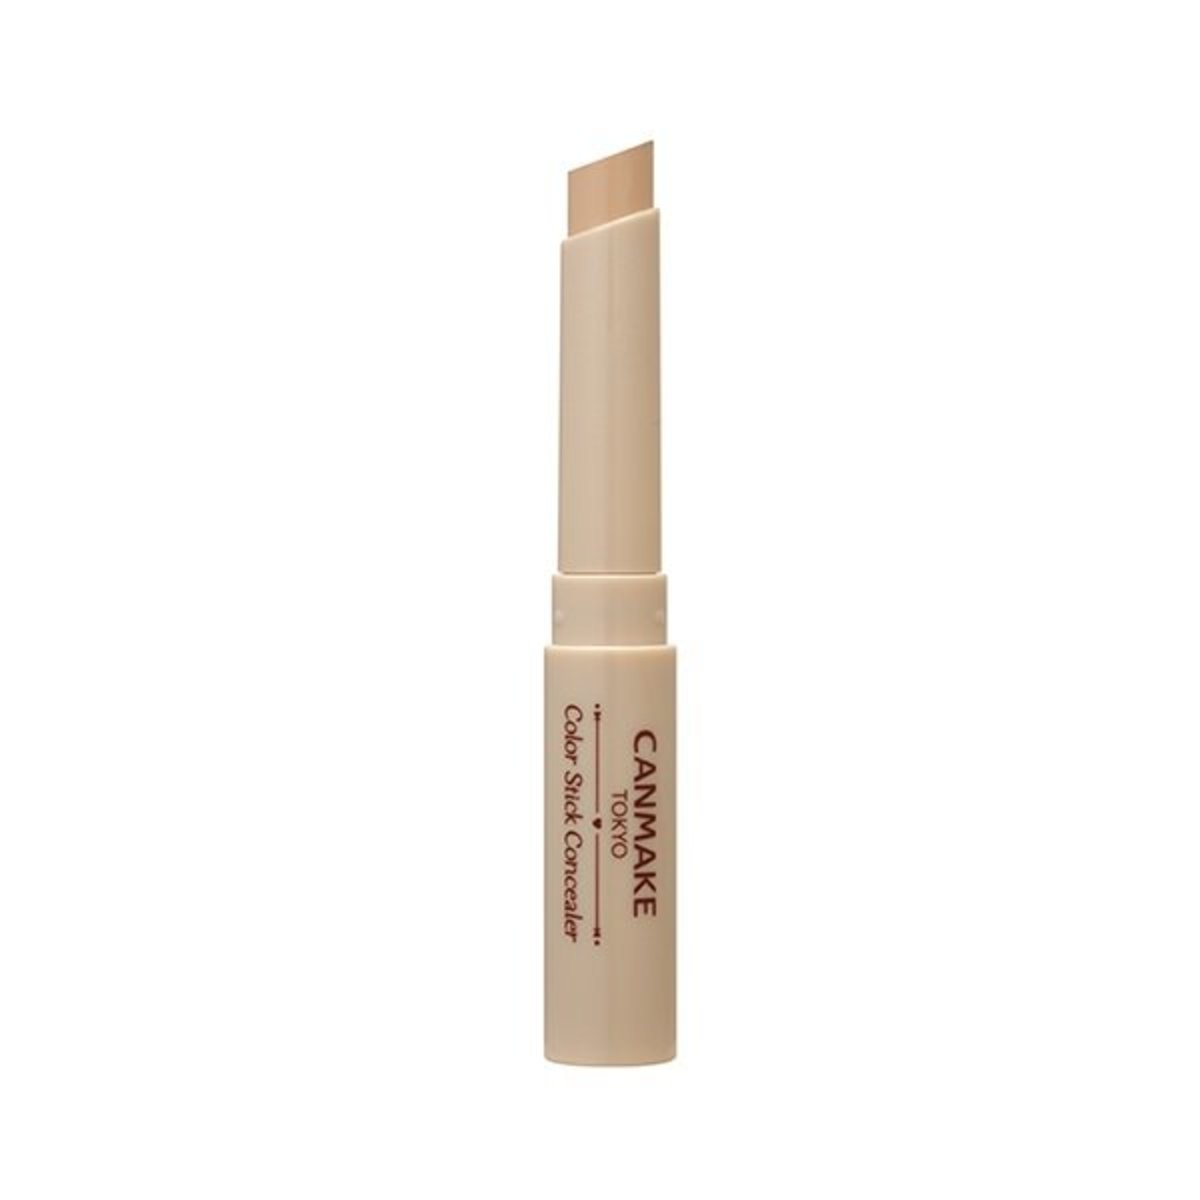 Color Stick Concealer - 01 Natural Beige